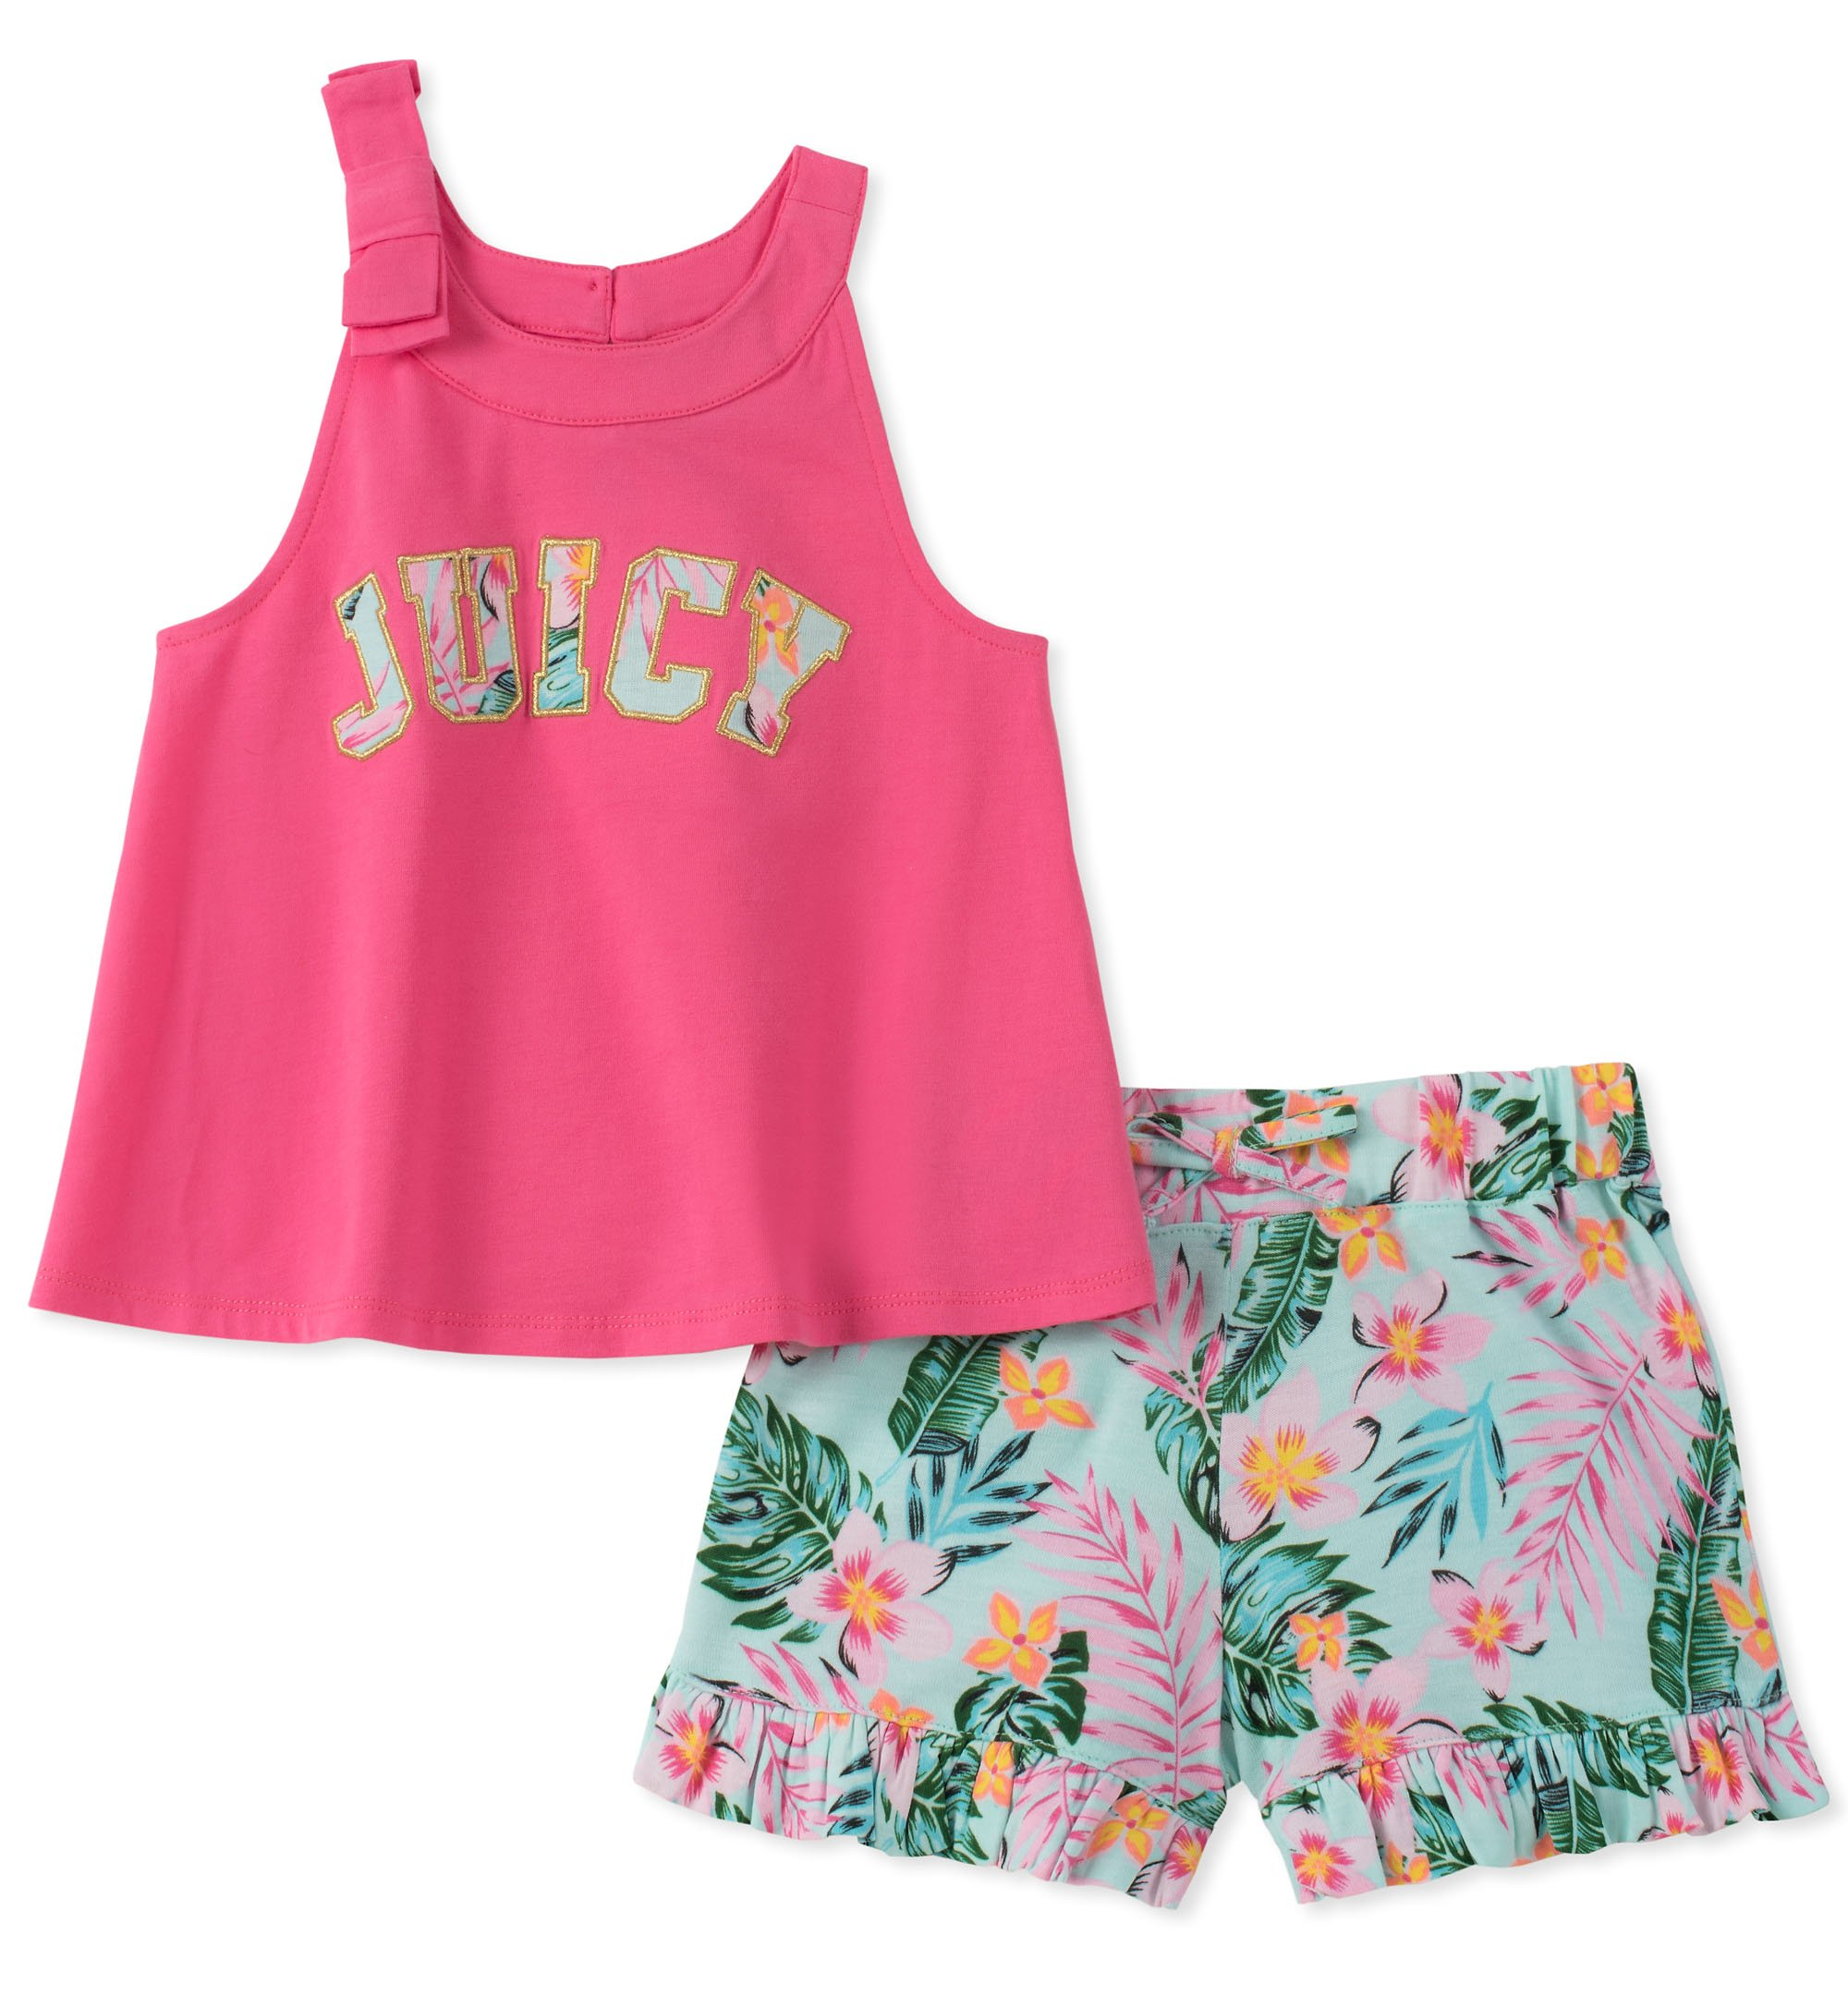 Juicy Couture Girls' Little 2 Pieces Shorts Set, Pink/Print 4